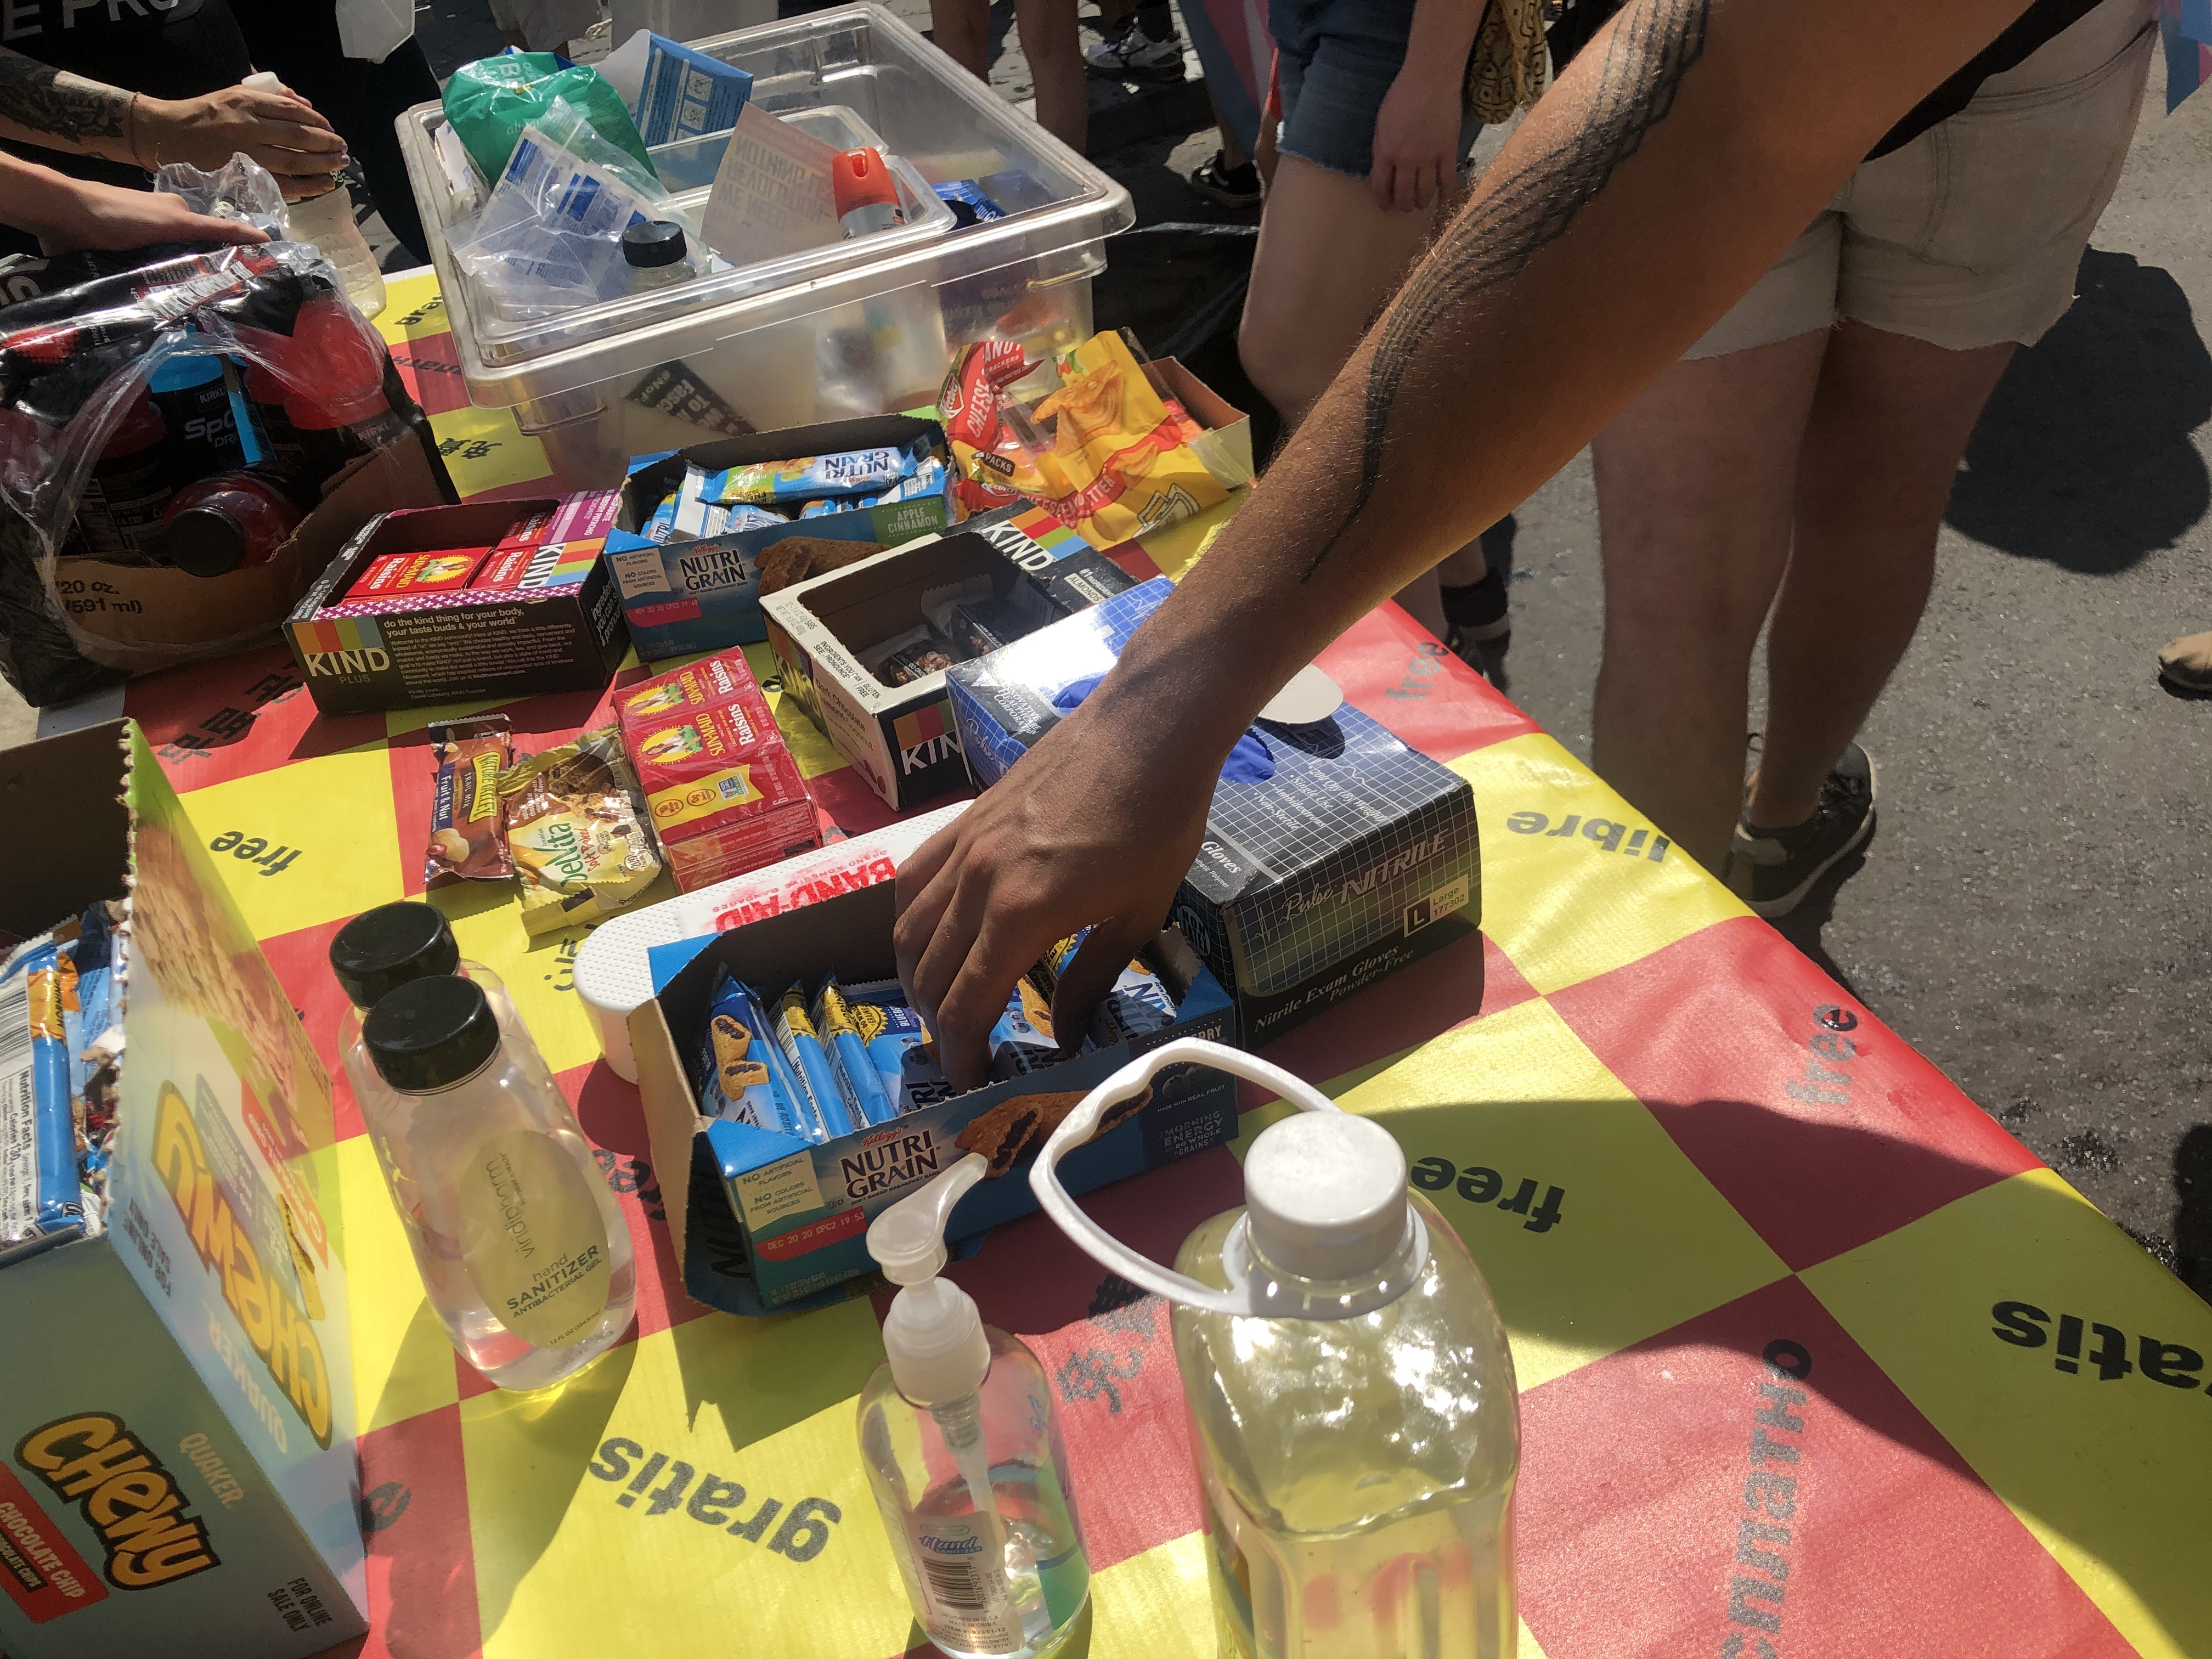 A hand reaching for a granola bar on a table surrounded by other snacks